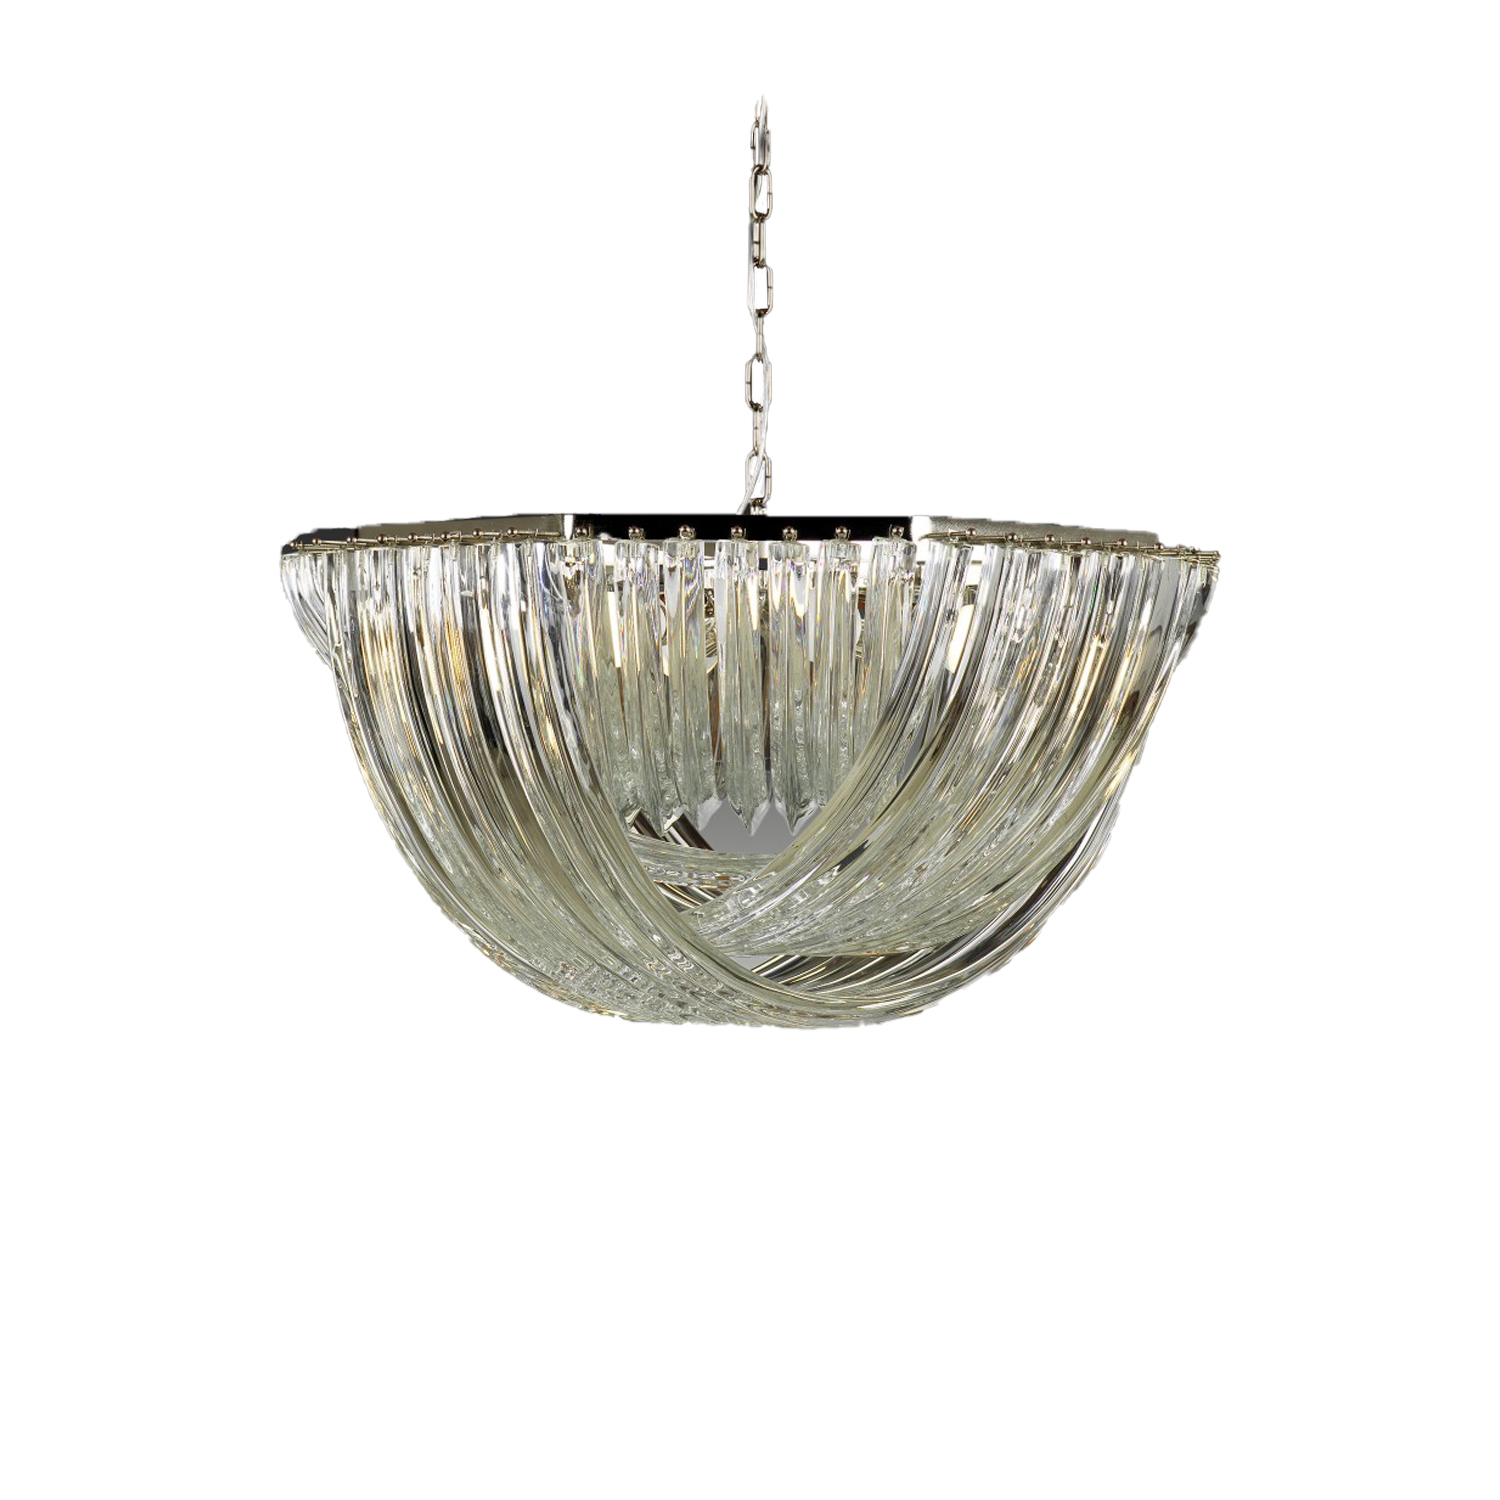 Gran Canal Chandelier Ø80 - <p>This elegant and typical Venetian chandelier is the speciality of our master glass worker Alberto Dona'. Artisans take a little piece of glass and extend it, thanks to its high temperature. The design of this chandelier plays on the repetition of glass elements, creating a refined and fascinating atmosphere.</p>  | Matter of Stuff